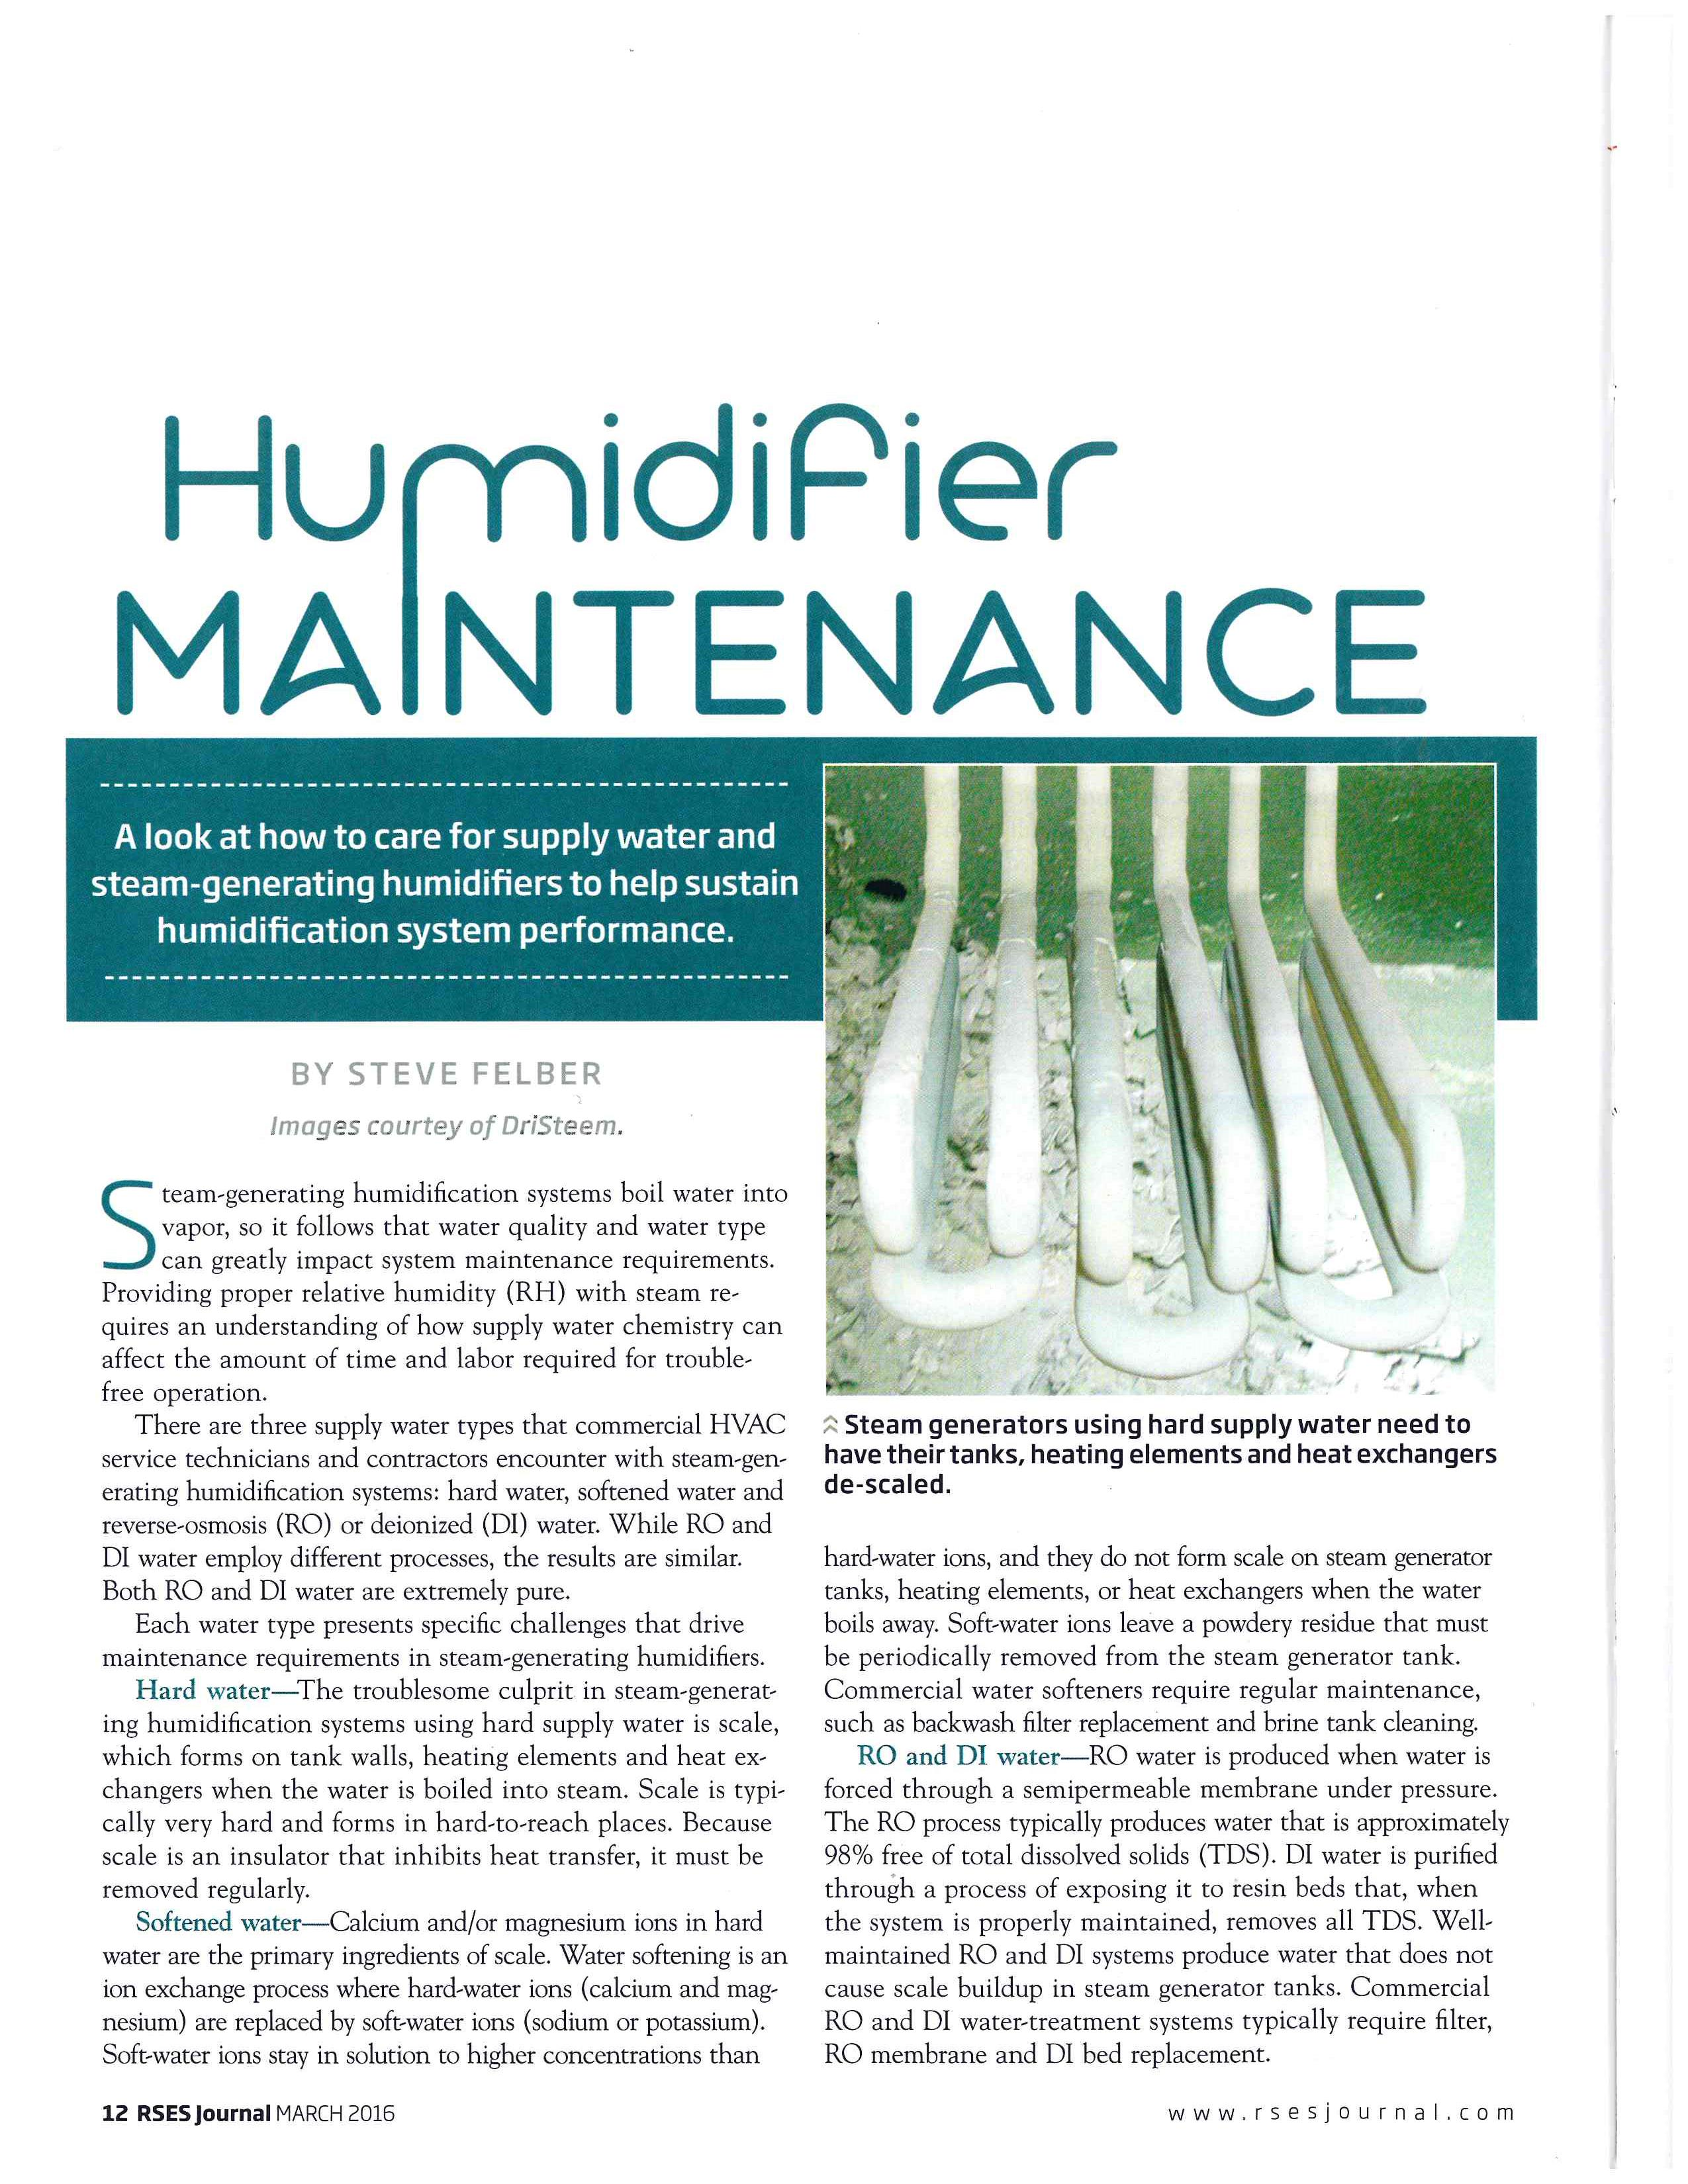 RSES Journal_Humidifier maintenance article_Mar2016.pdf_Page_2